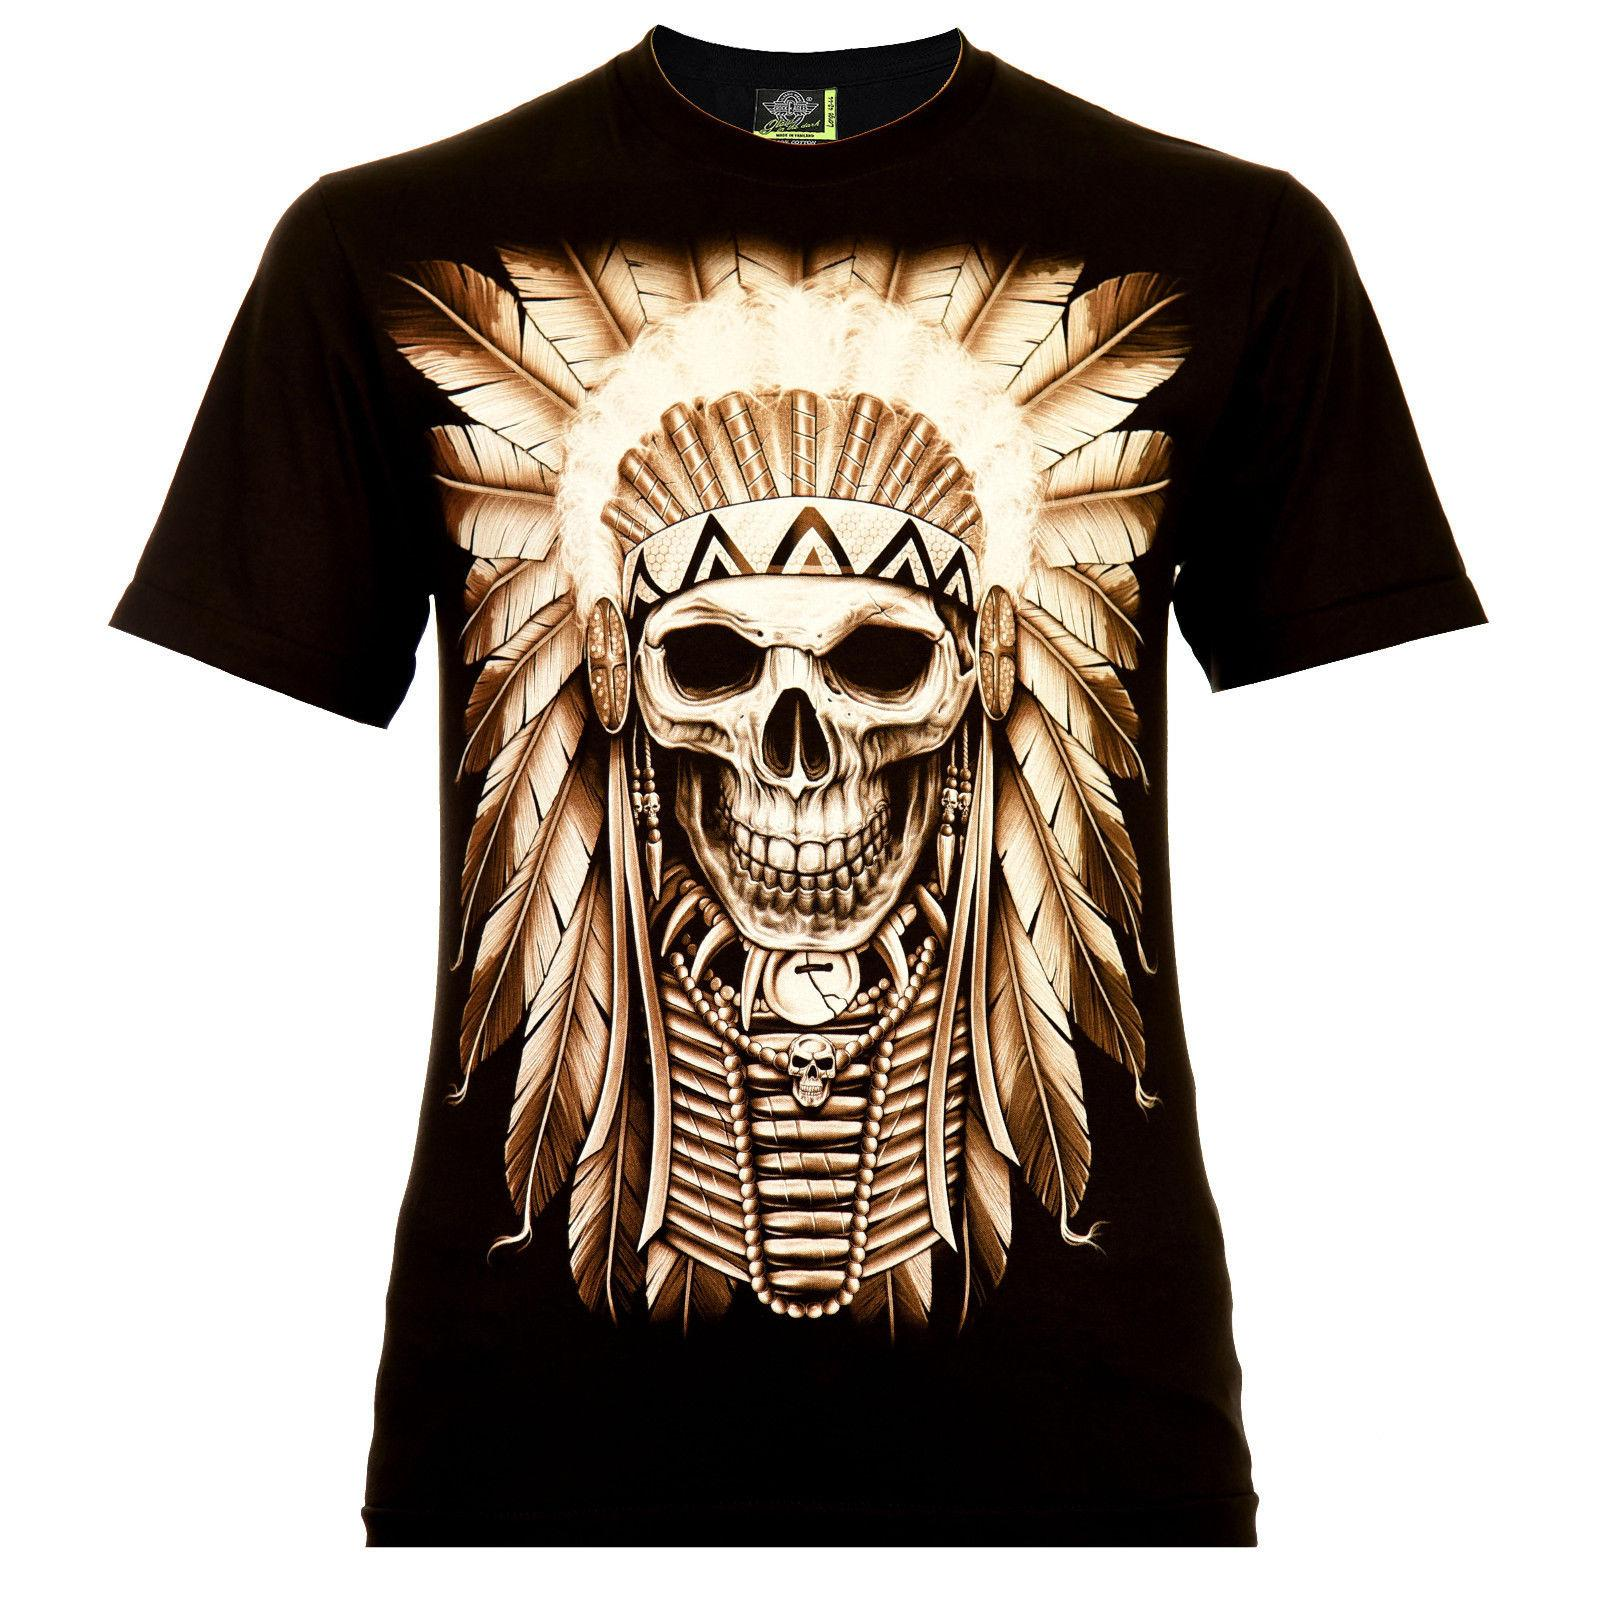 Indigo Happy Death Rock Eagle T Shirt Glow In The Dark Skull